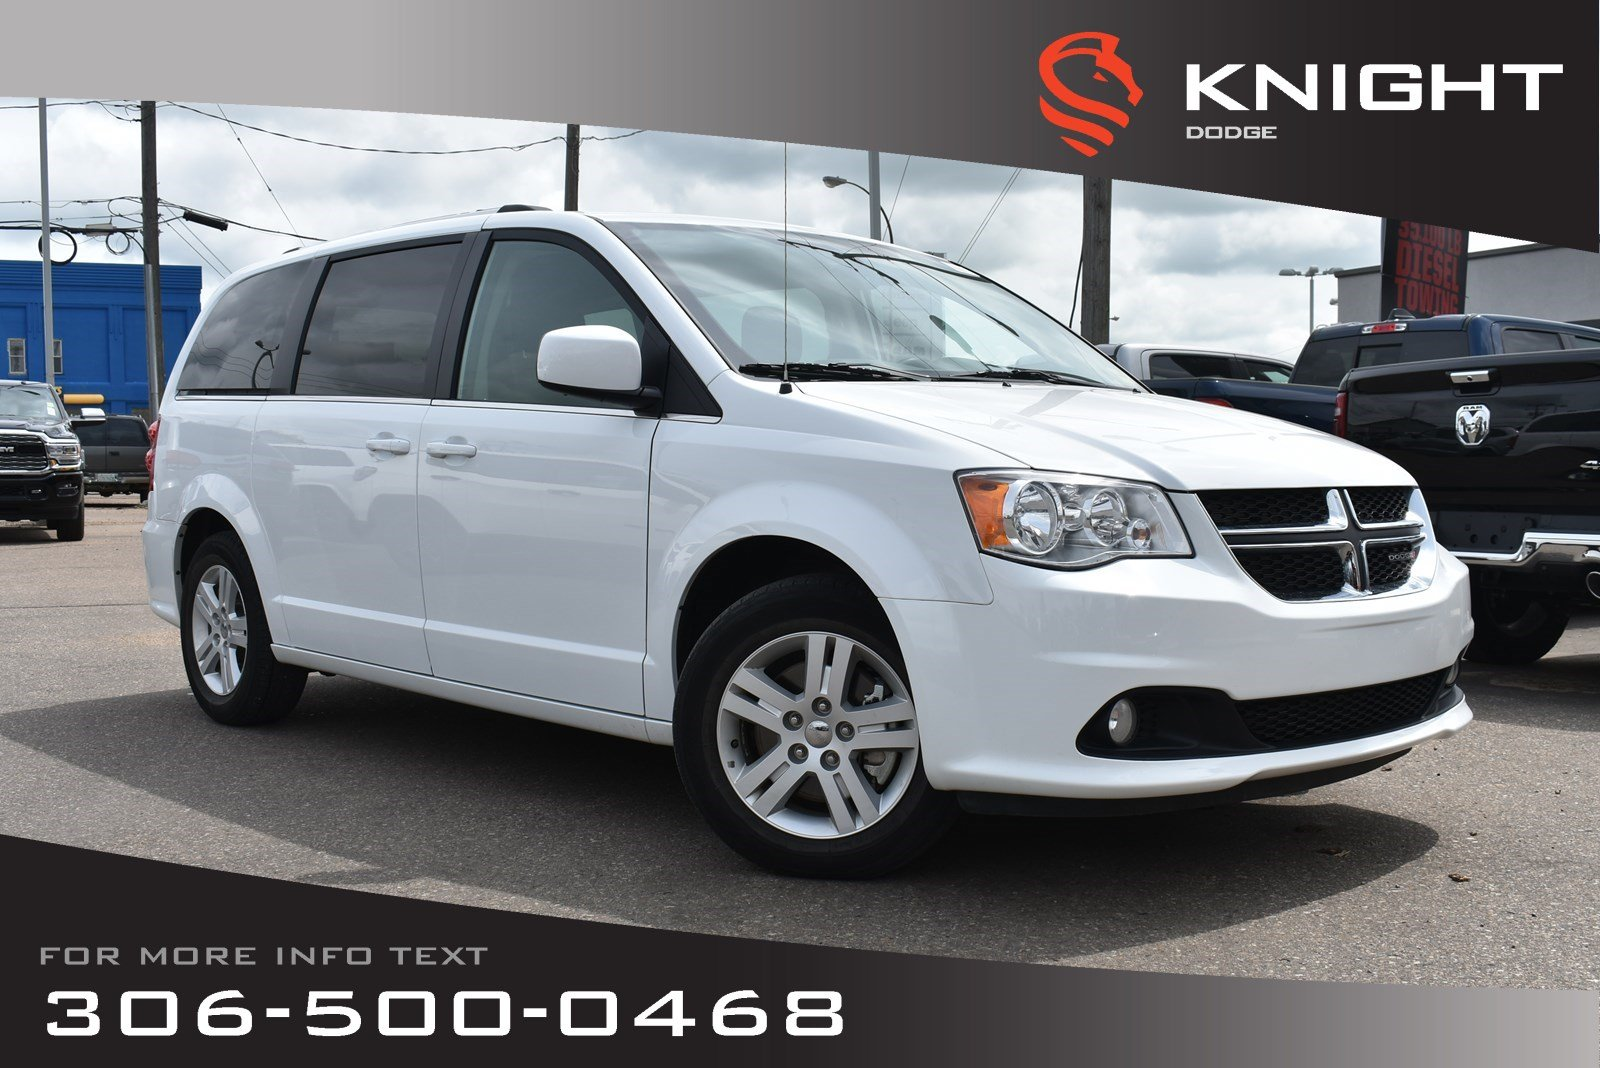 2018 Dodge Grand Caravan Crew Plus | Leather | Heated Seats & Steering Whee Crew Plus 2WD